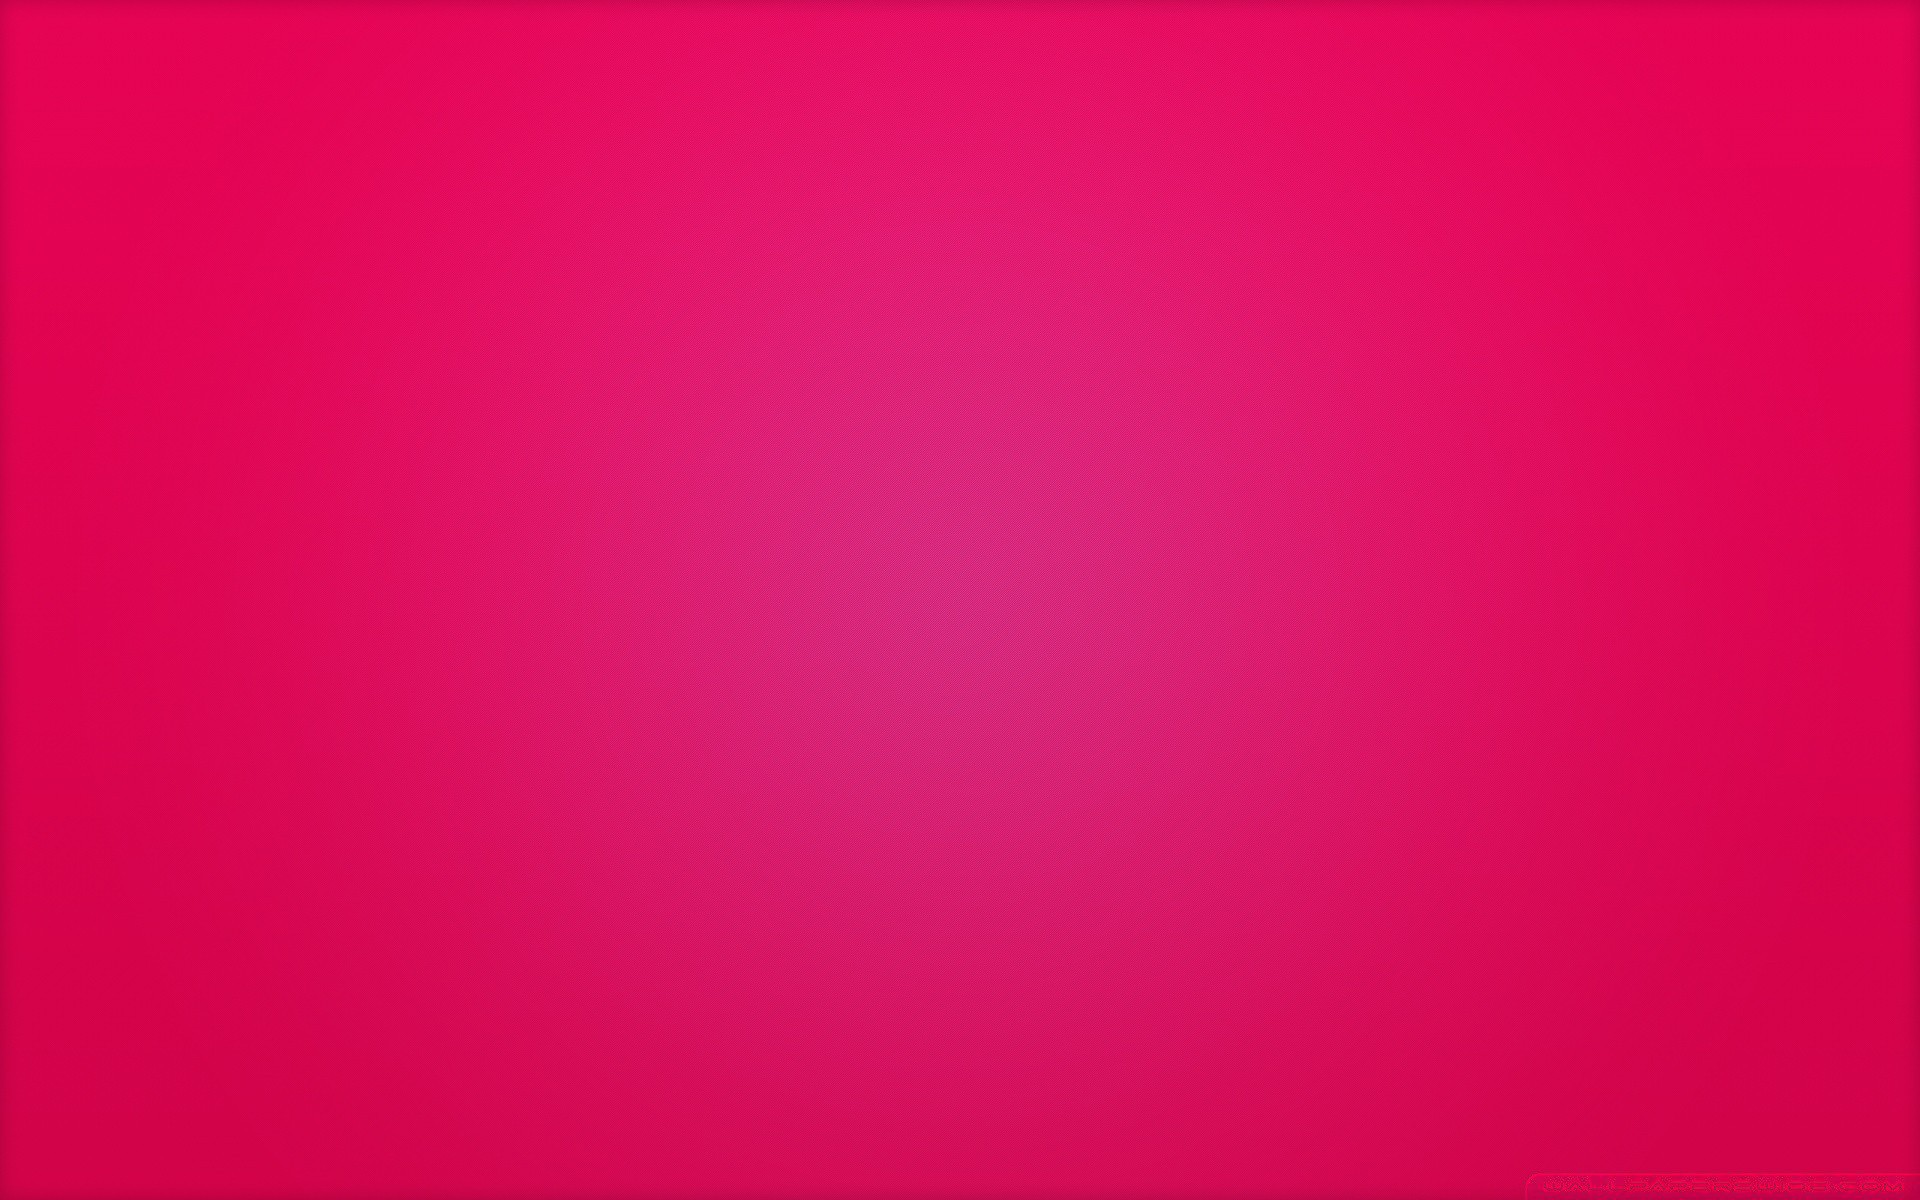 Poppin Pink Phone Wallpapers